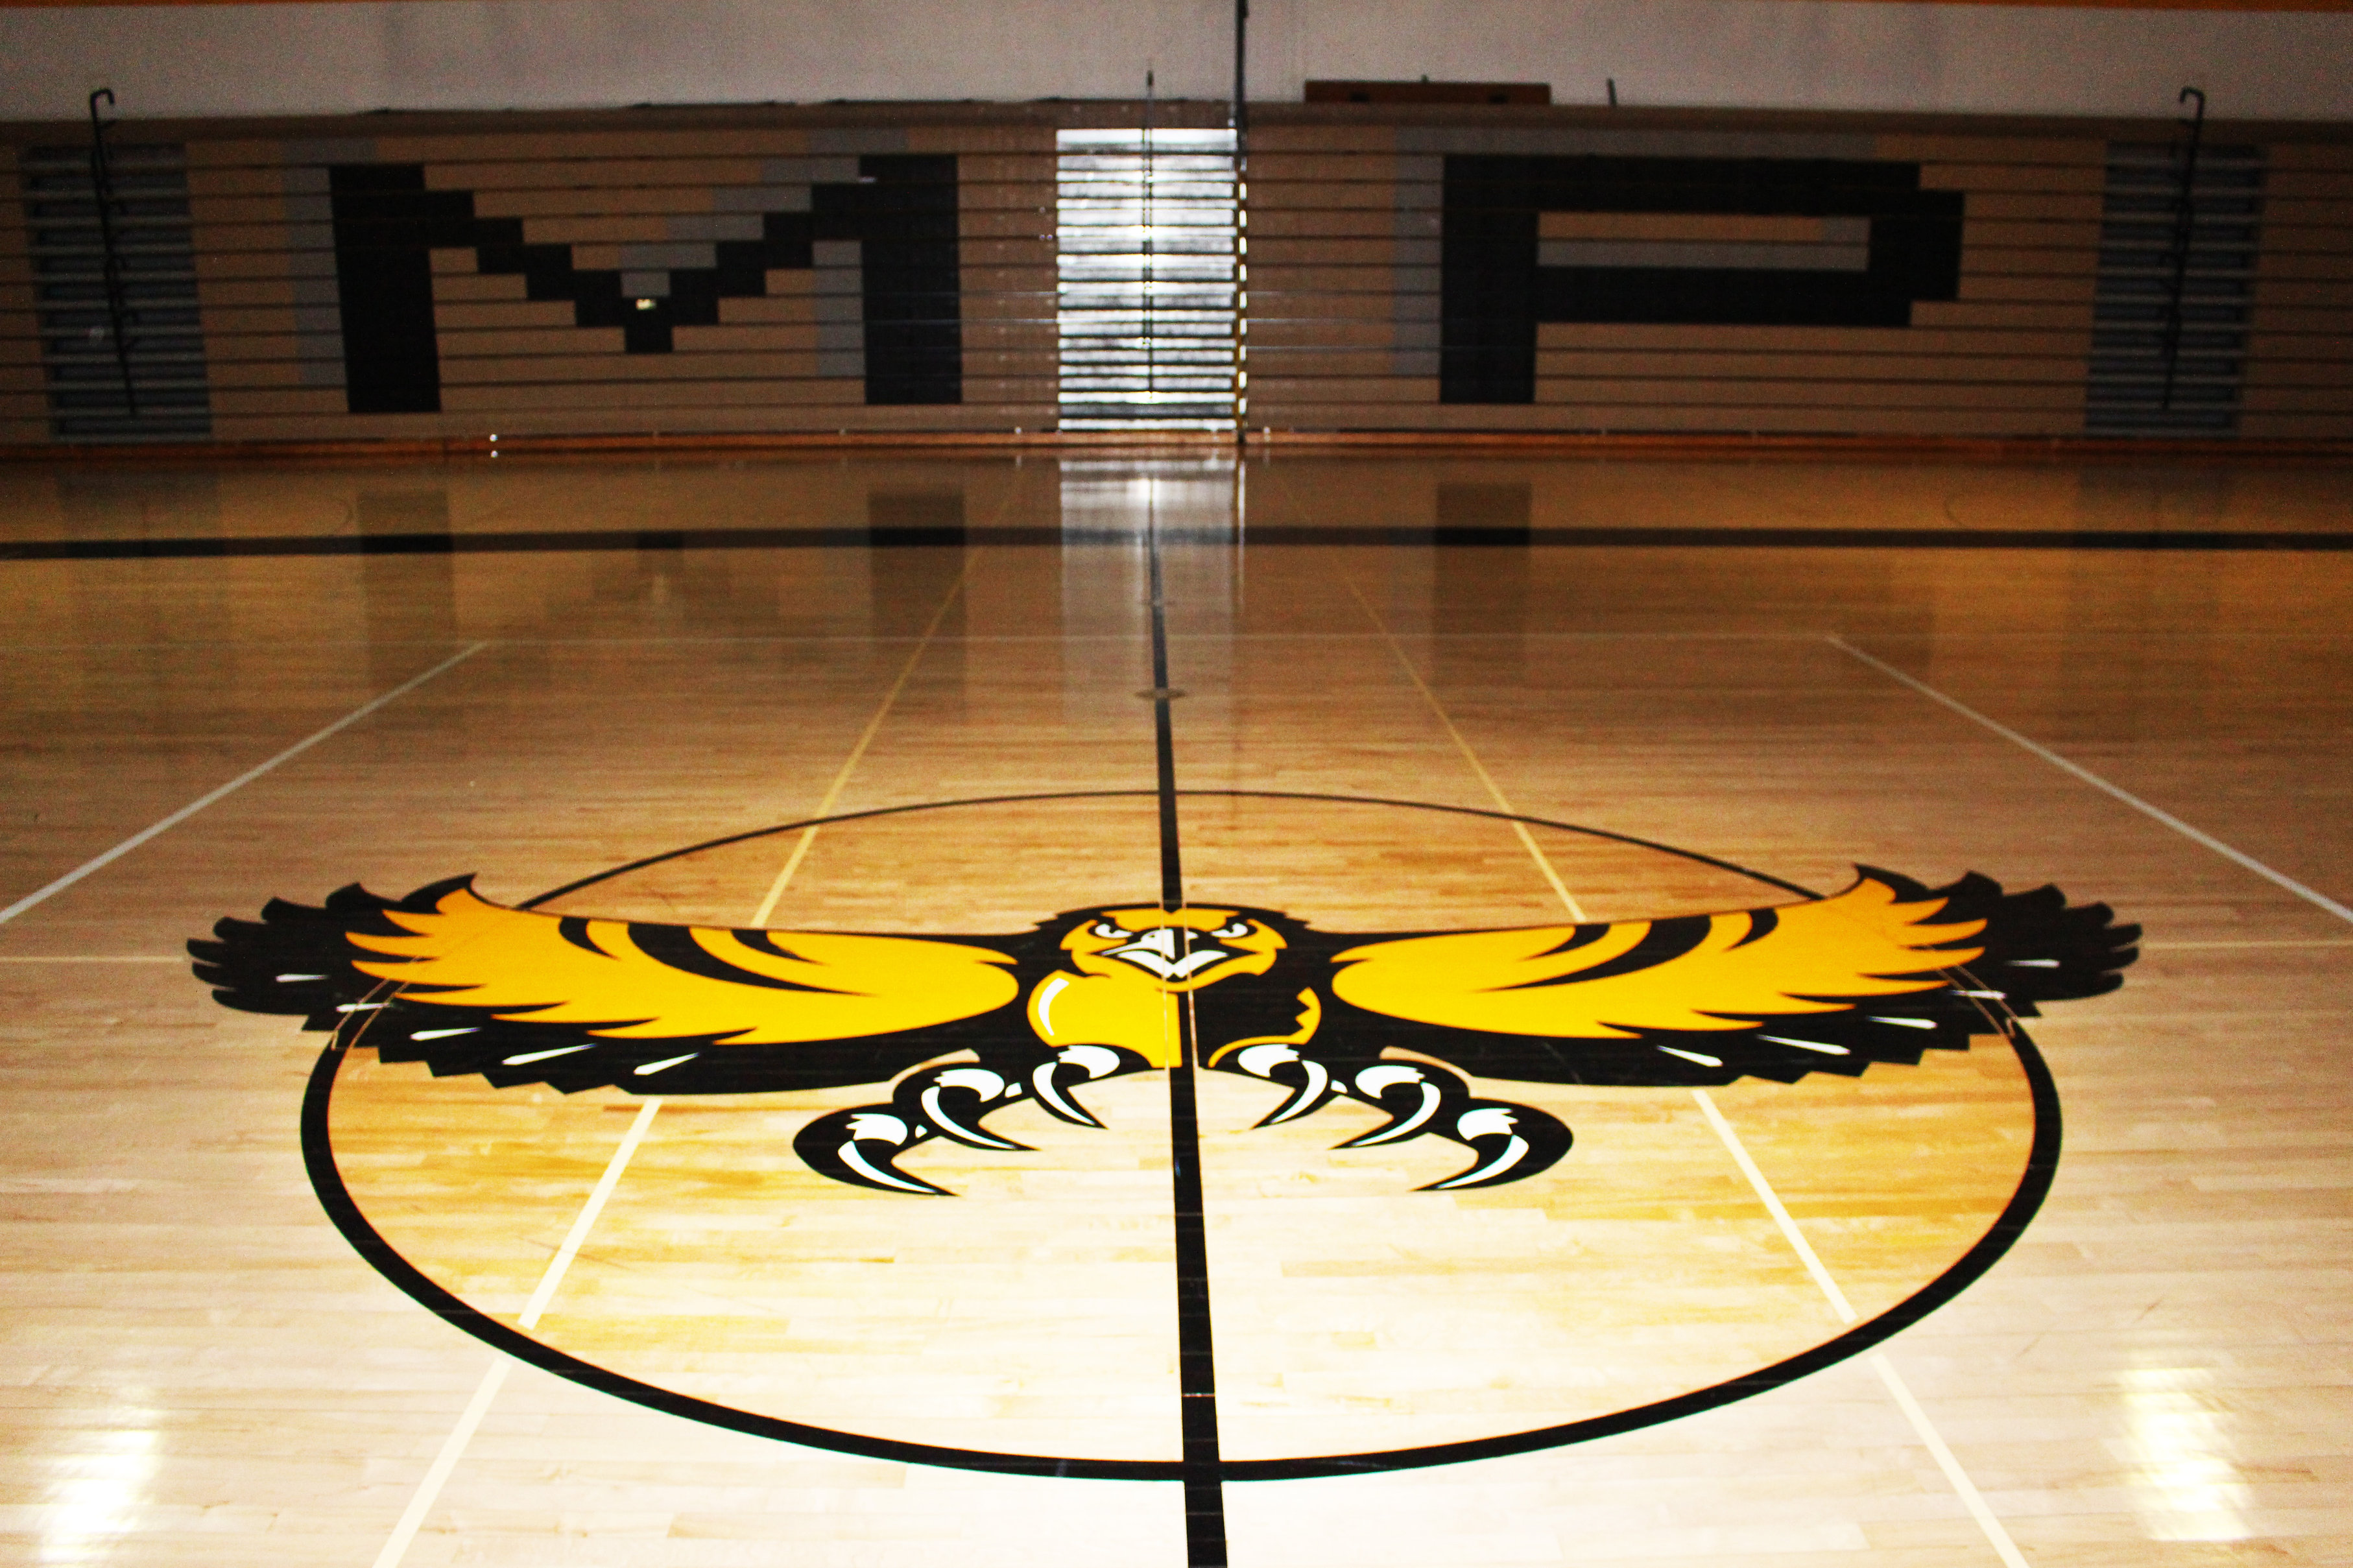 Golden hawk painted on the Gym floor